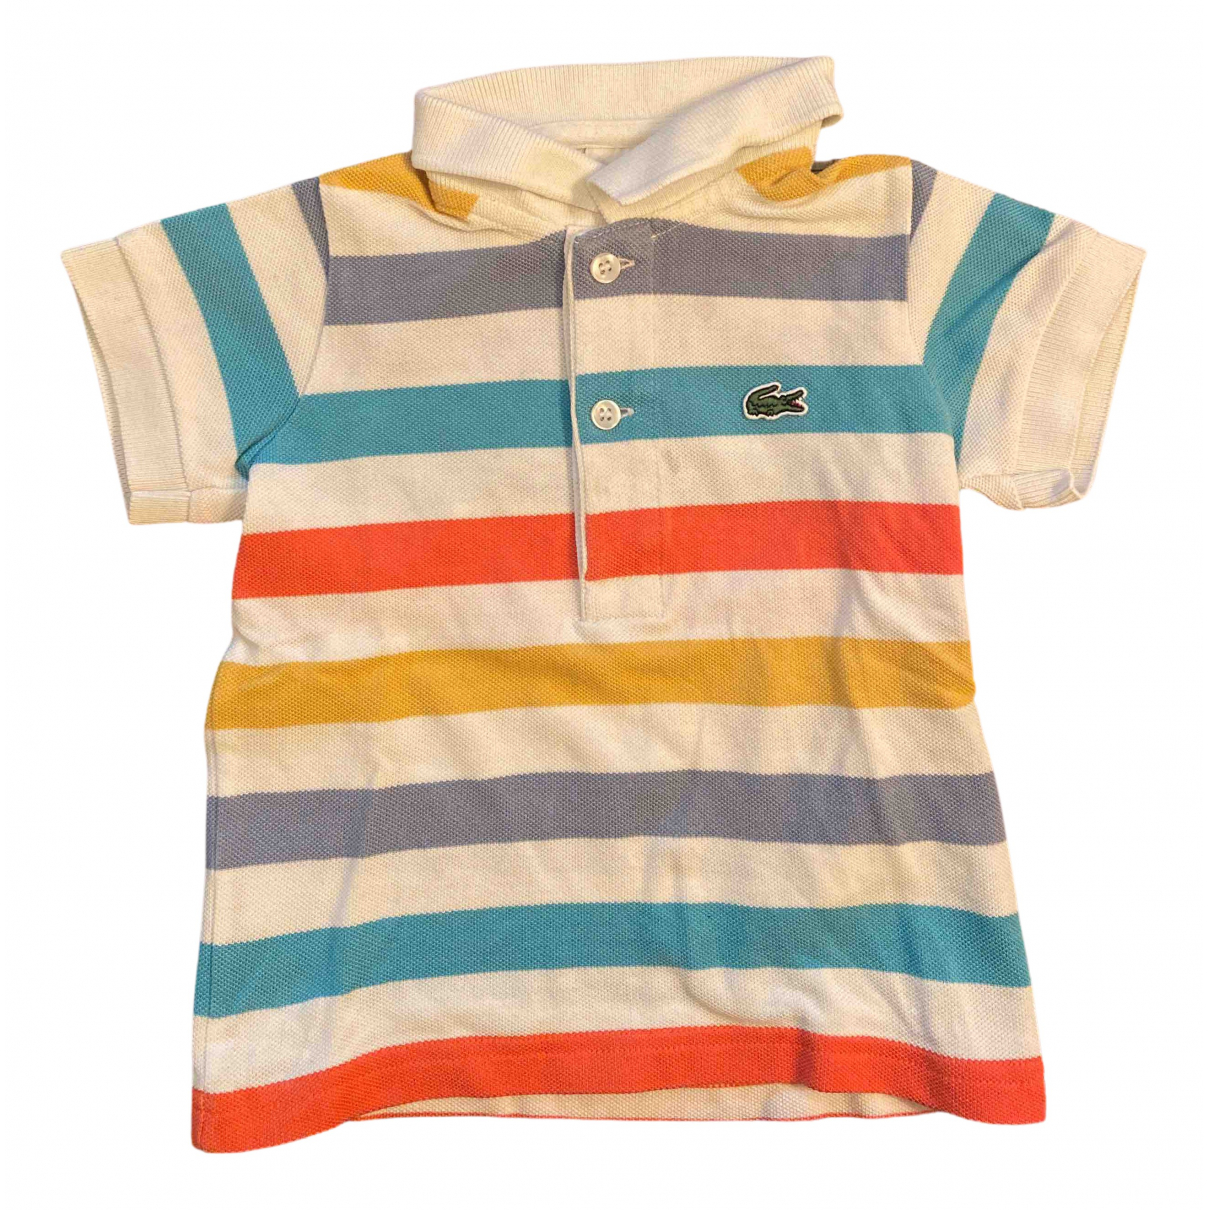 Lacoste N Multicolour Cotton  top for Kids 12 months - up to 74cm FR